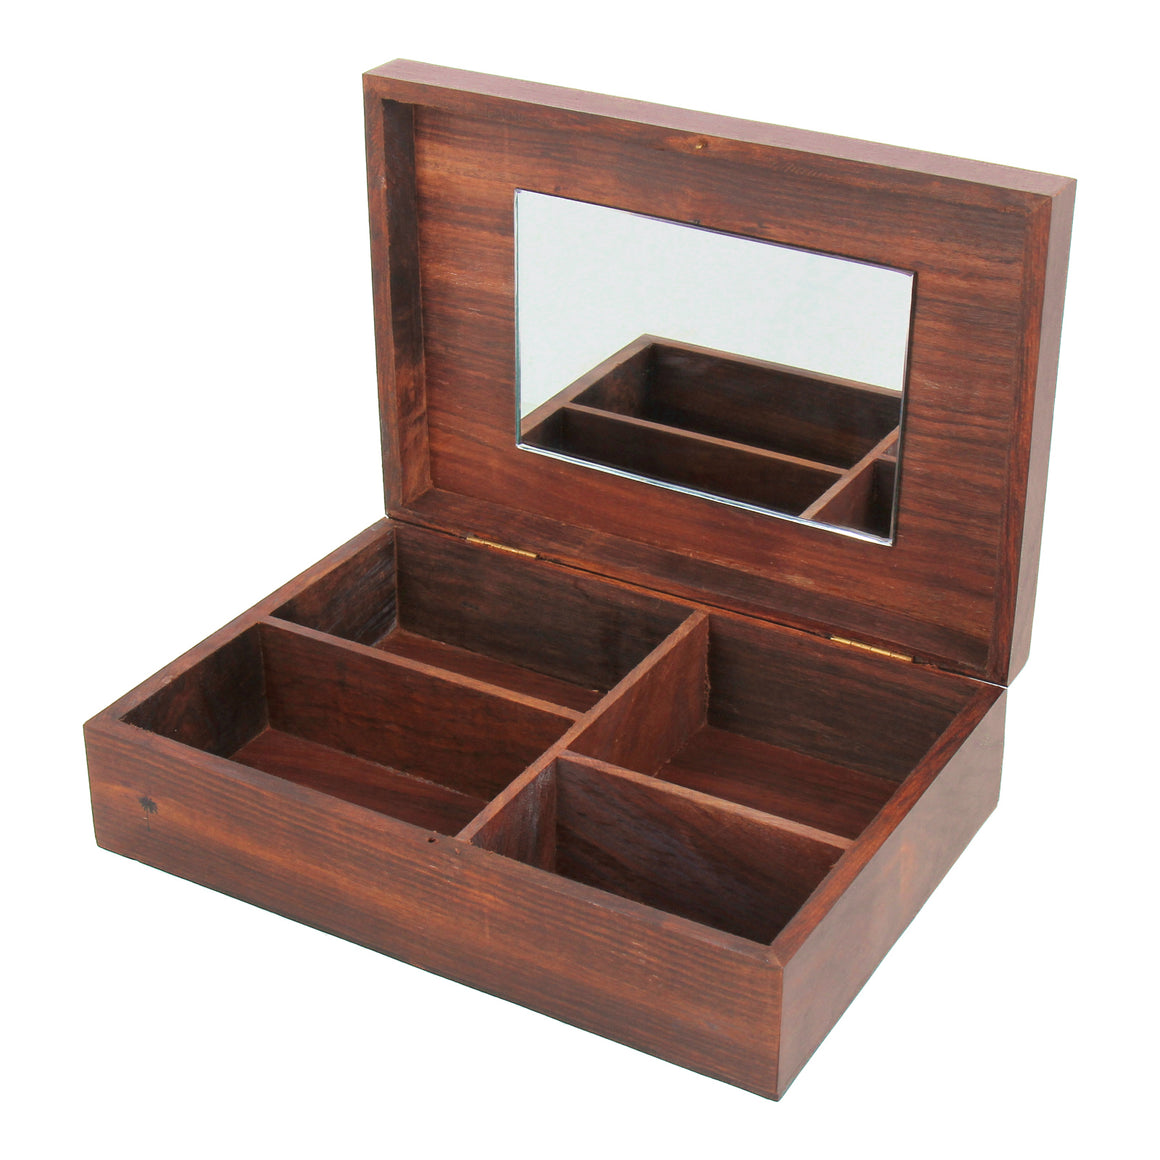 Wooden treasure box.